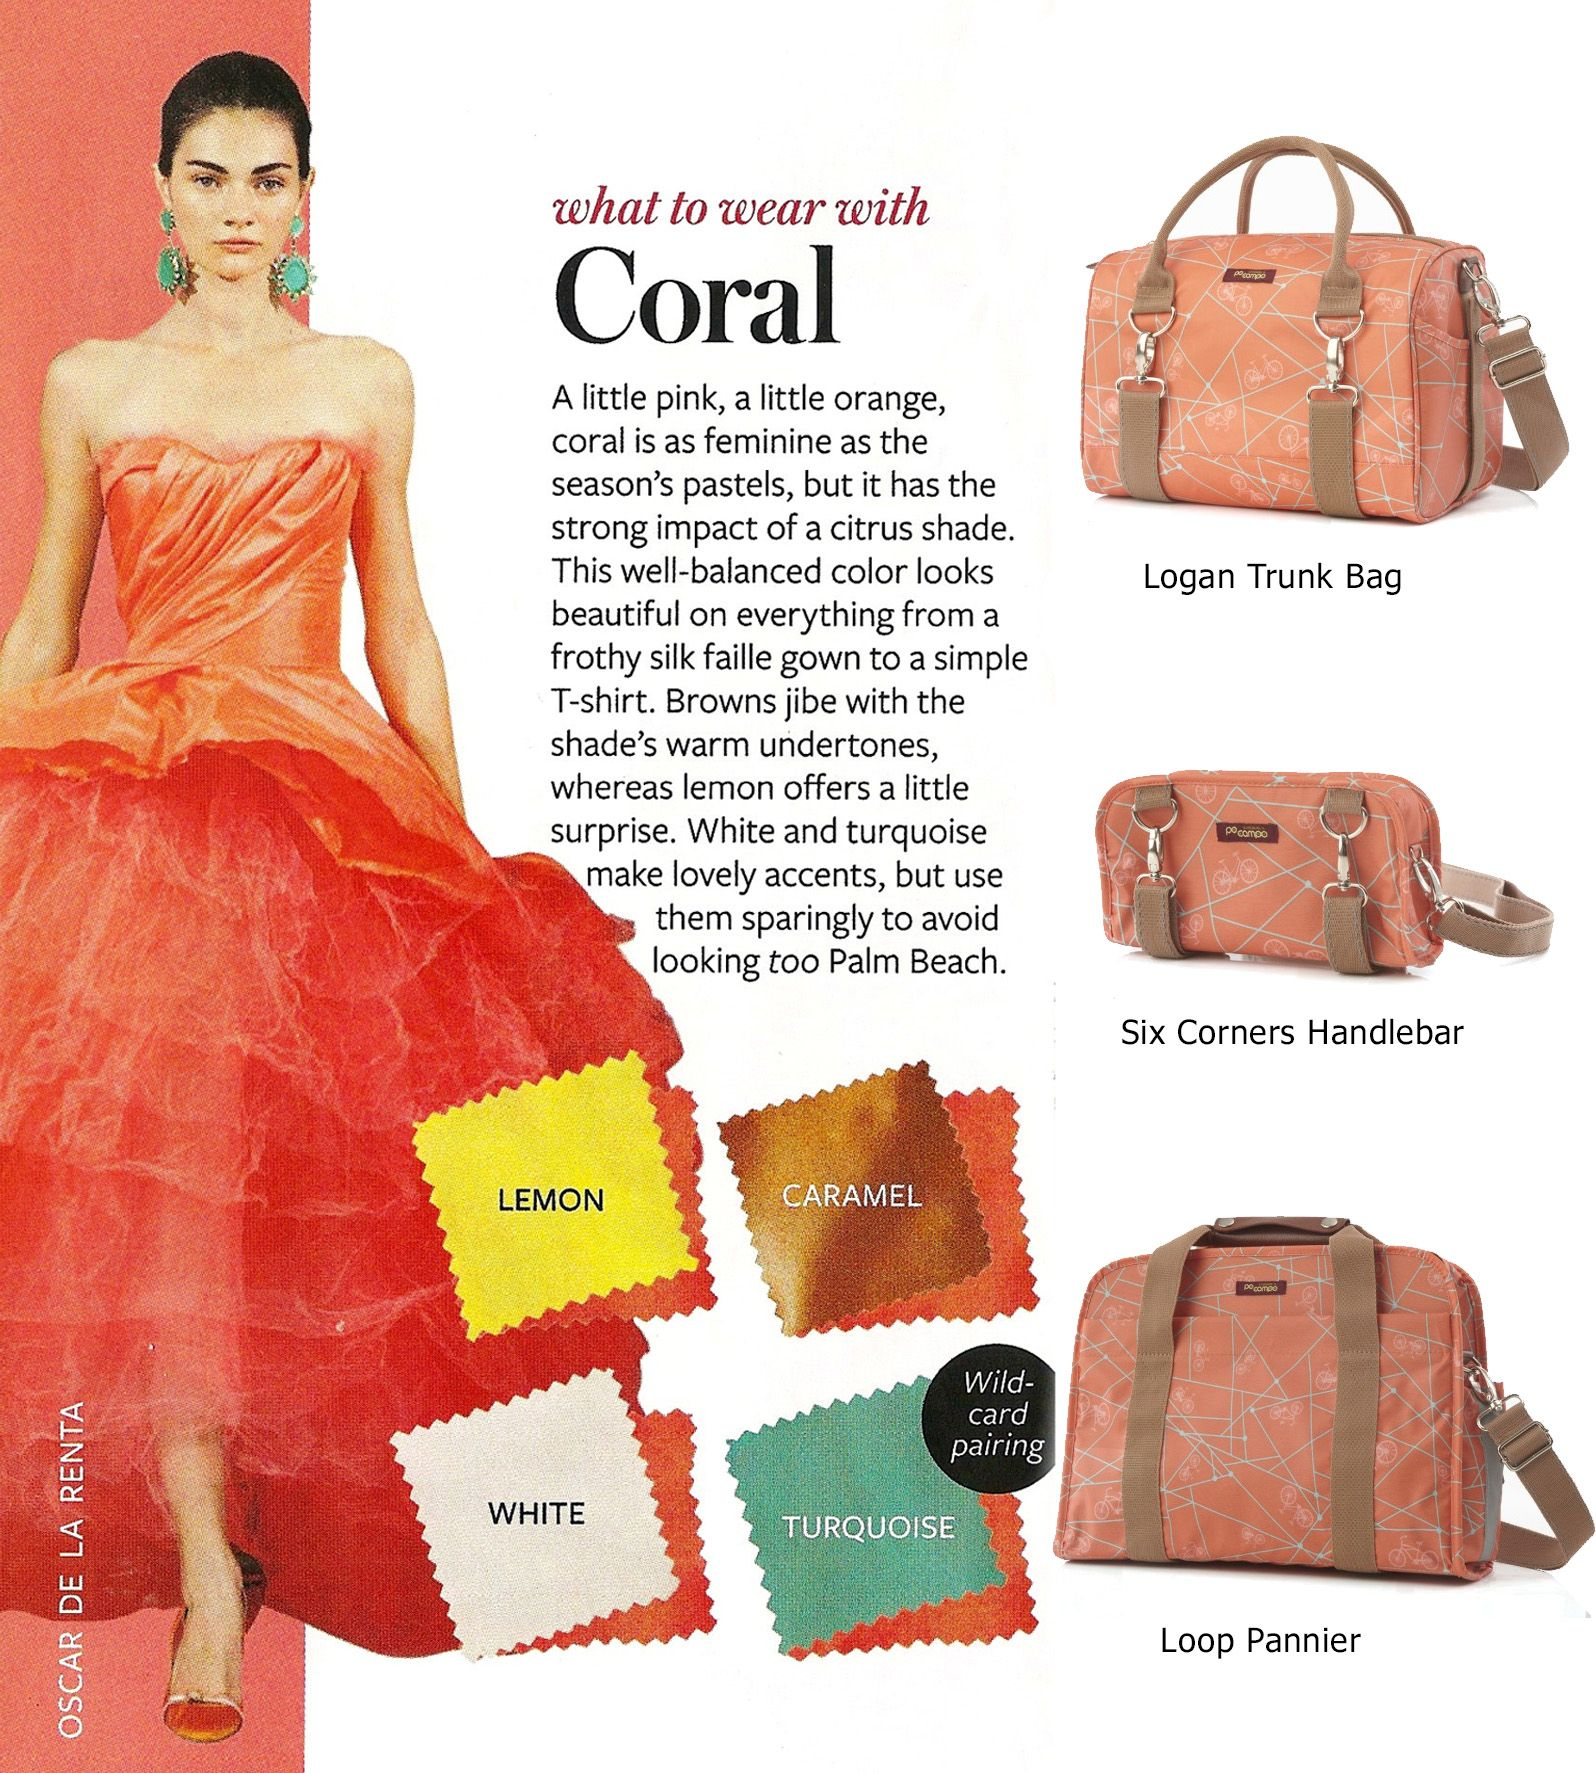 Excellent tips from InStyle on how to wear #coral! #pocampo #bikeprint